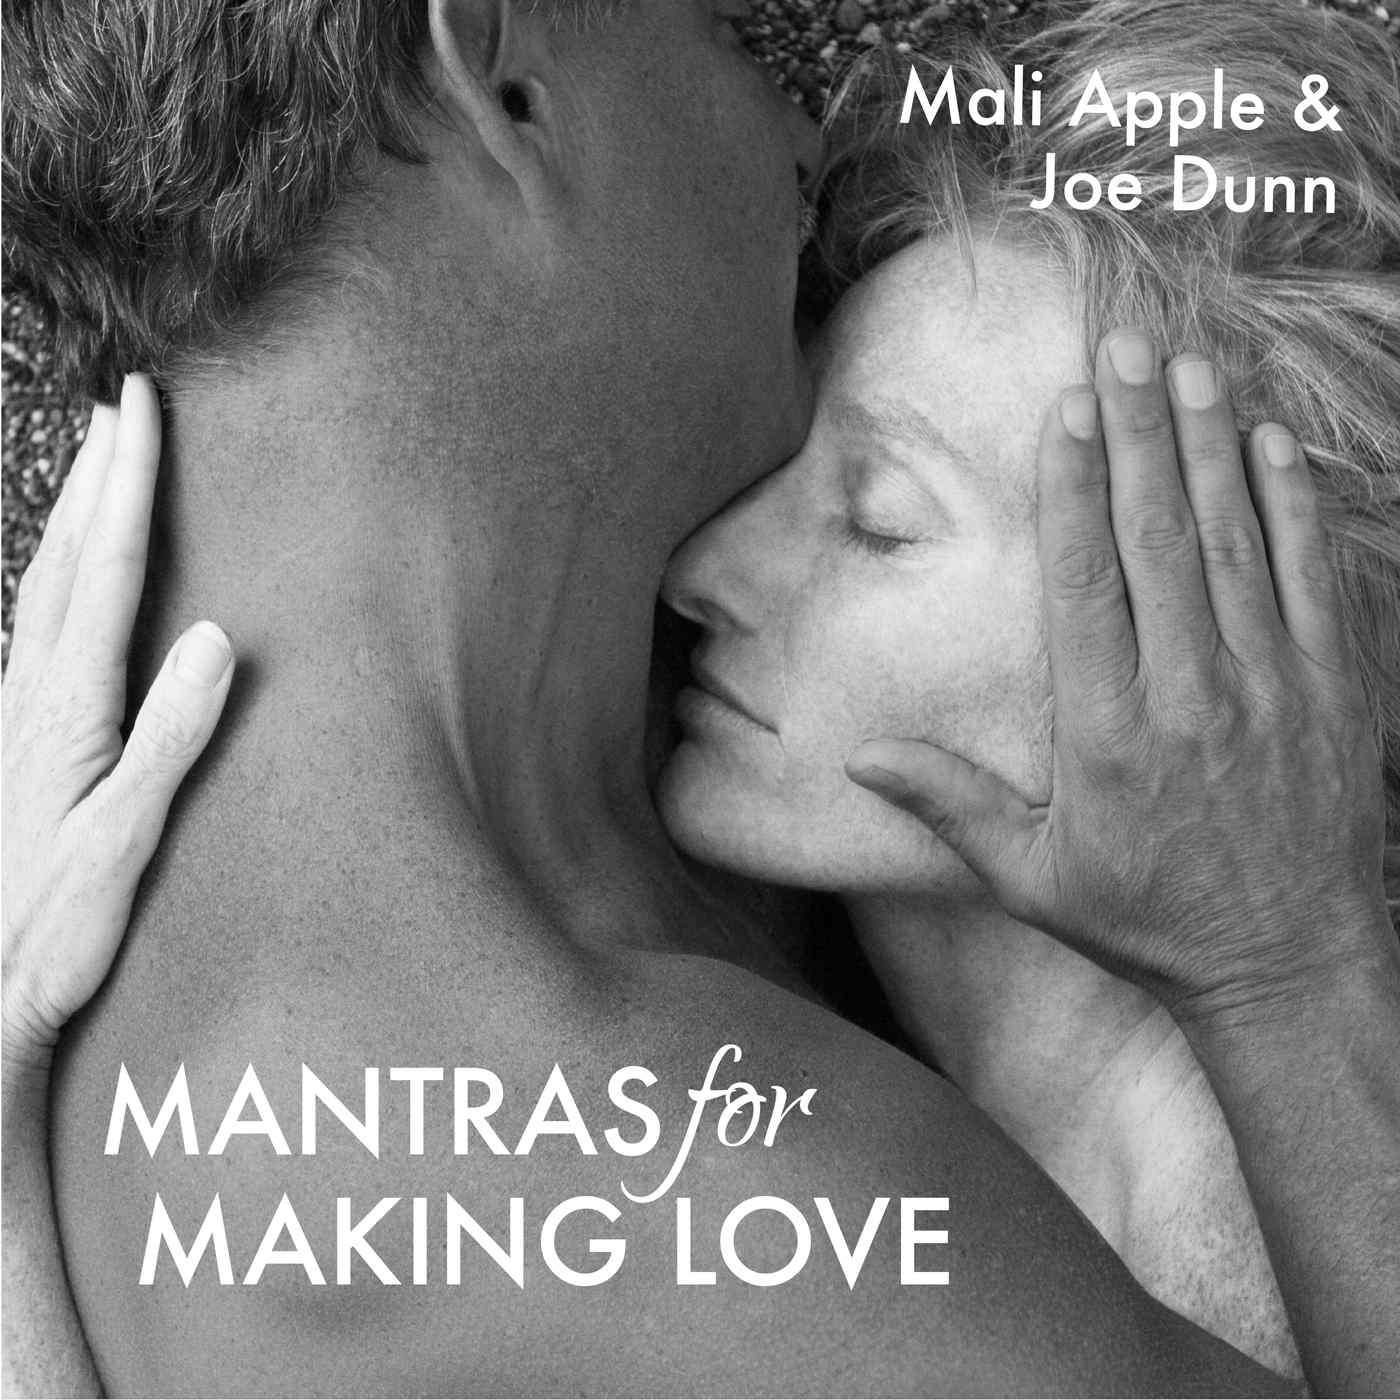 A gift from mali joe mantras for making love